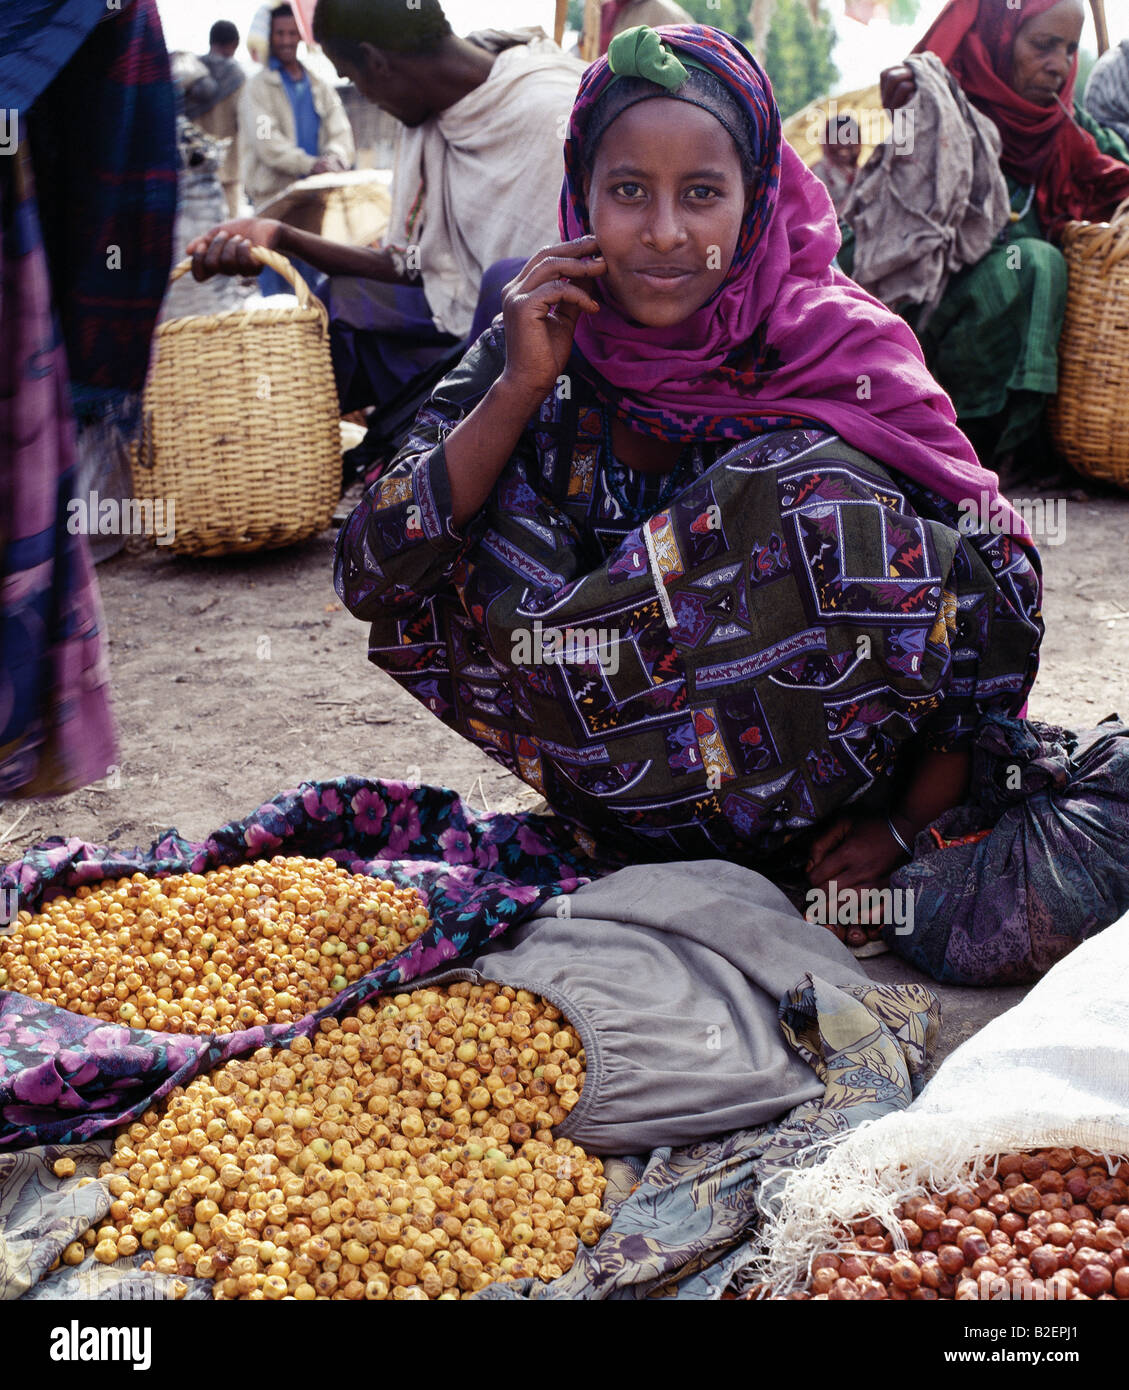 A woman sells dried berries at Bati market. Bati is the largest open-air market in Ethiopia. - Stock Image